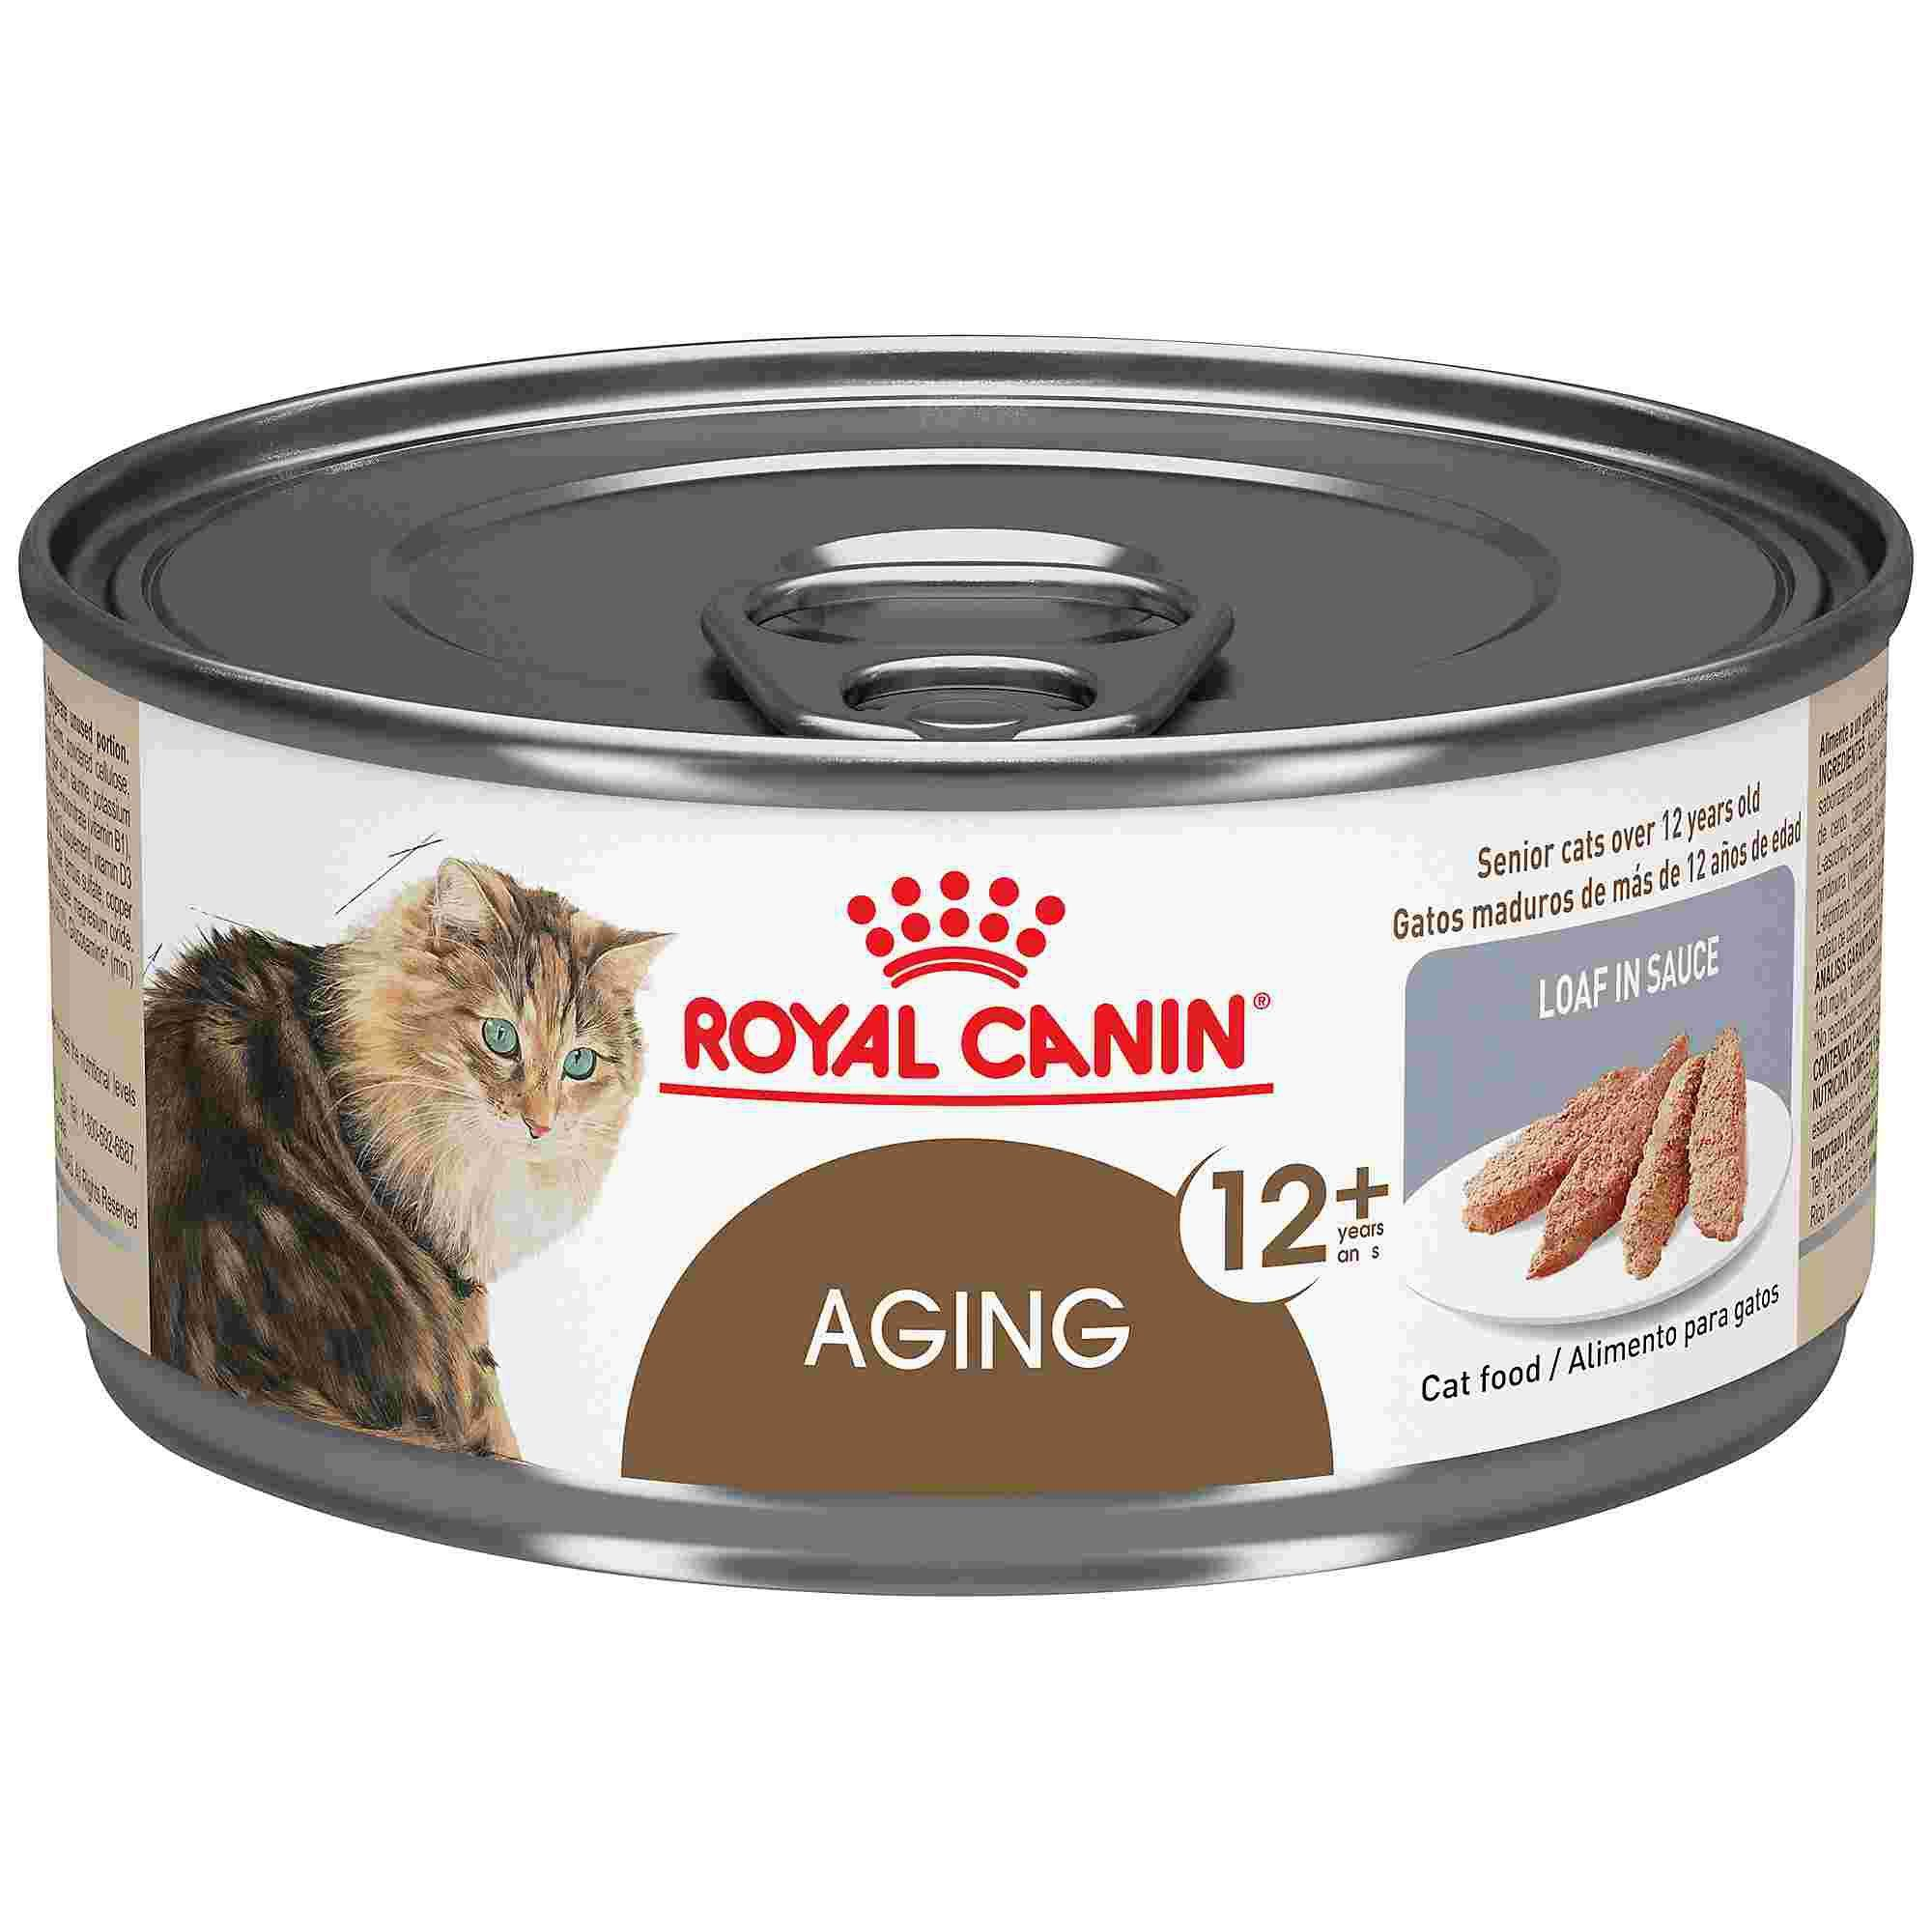 Royal Canin Aging 12+ Loaf in Sauce Wet Cat Food, 5.8 oz